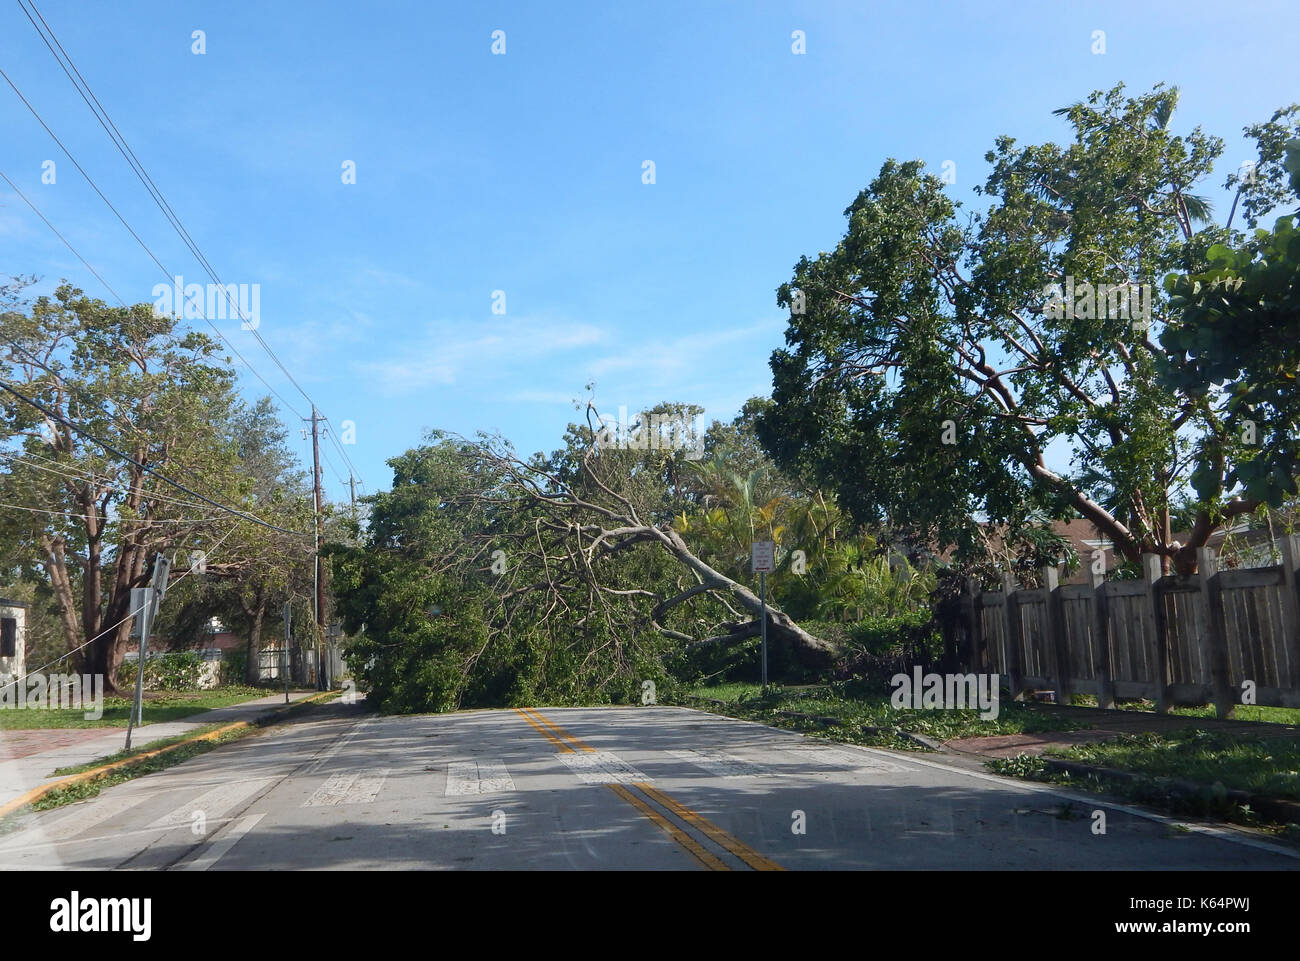 Miami, United States. 12th Sep, 2017. A fallen tree on a road after Hurricane Irma, in the Kendall district of Miami, Florida, USA, 11 September 2017. Florida has dawned and confirmed the bad omens given by meteorologists on the destructive power of Hurricane Irma, which has already claimed at least six deaths in Florida, three in Georgia and one in South Carolina and keeps more than 6.7 millions of properties in the dark. Credit: Latif Kassidi/EFE/Alamy Live News - Stock Image